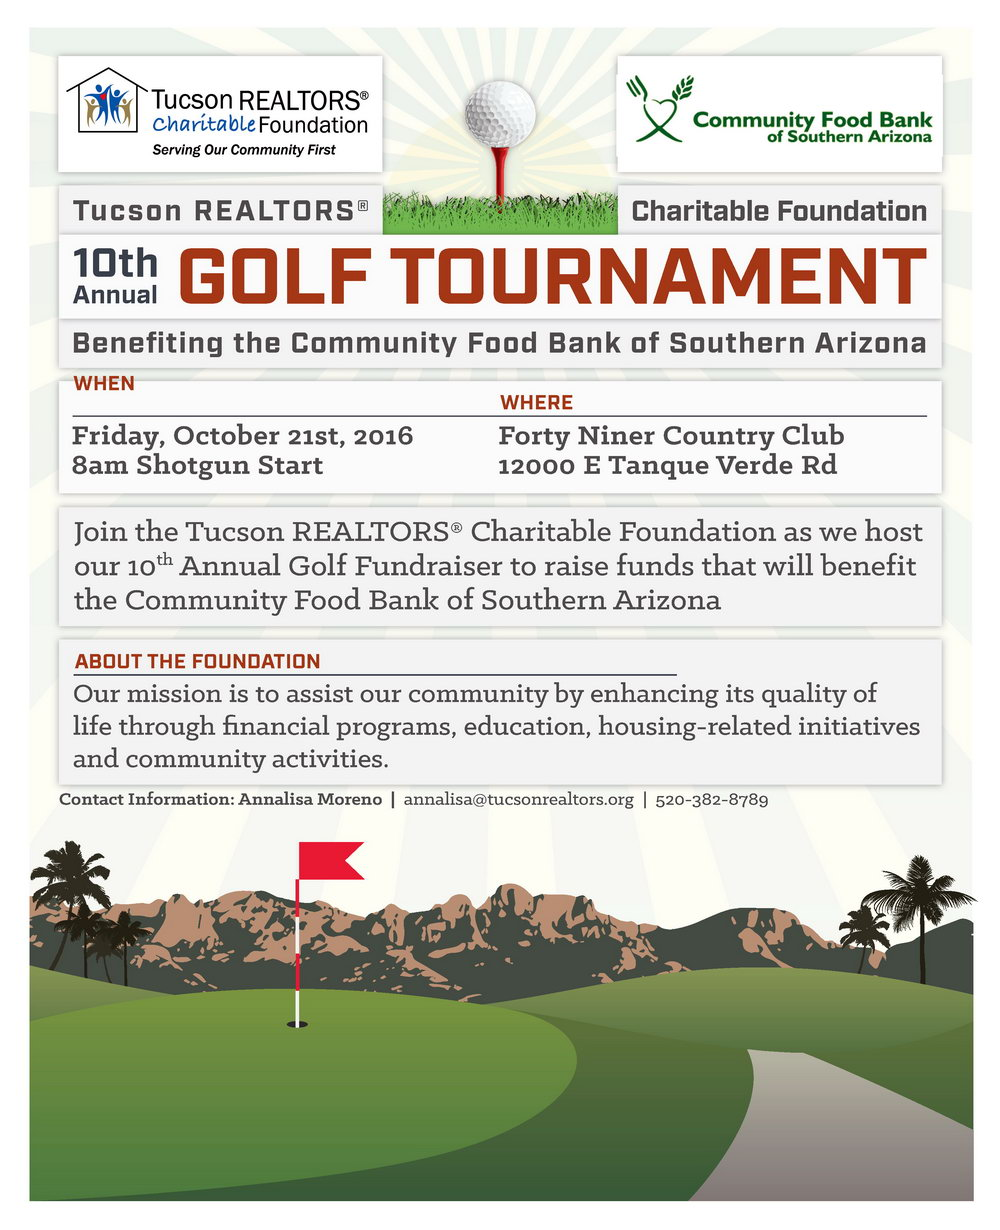 Golf Tournament Fundraiser Flyer Template